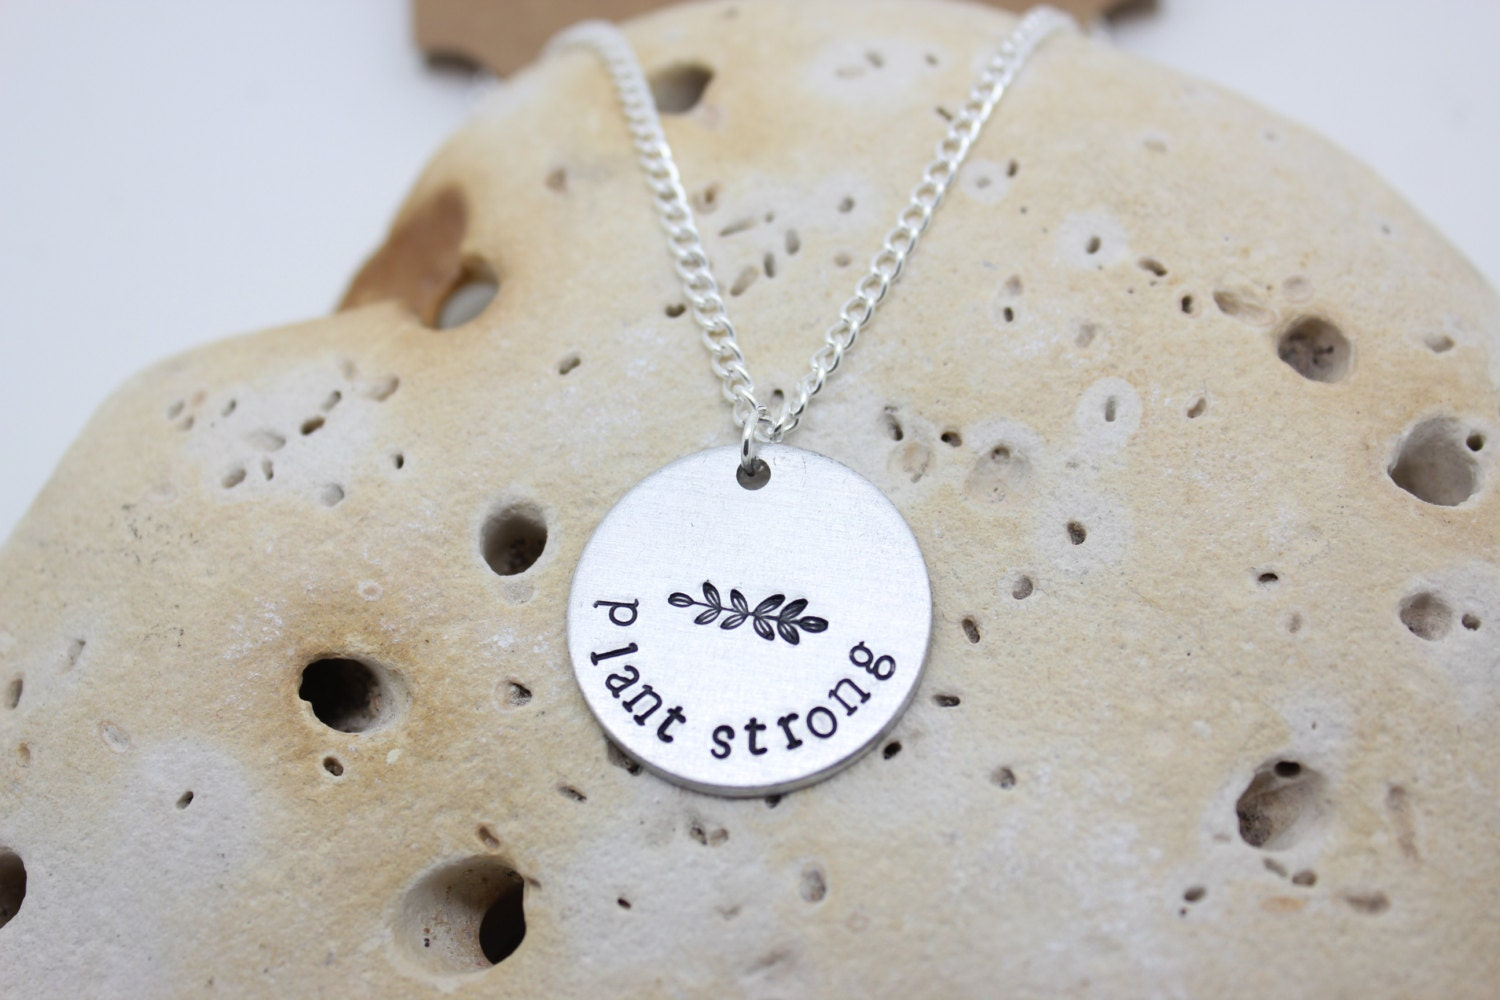 Vegan jewellery - vegan necklace - jewelry - plant strong - animal rights jewellery - handstamped 2.5cm pendant on 18